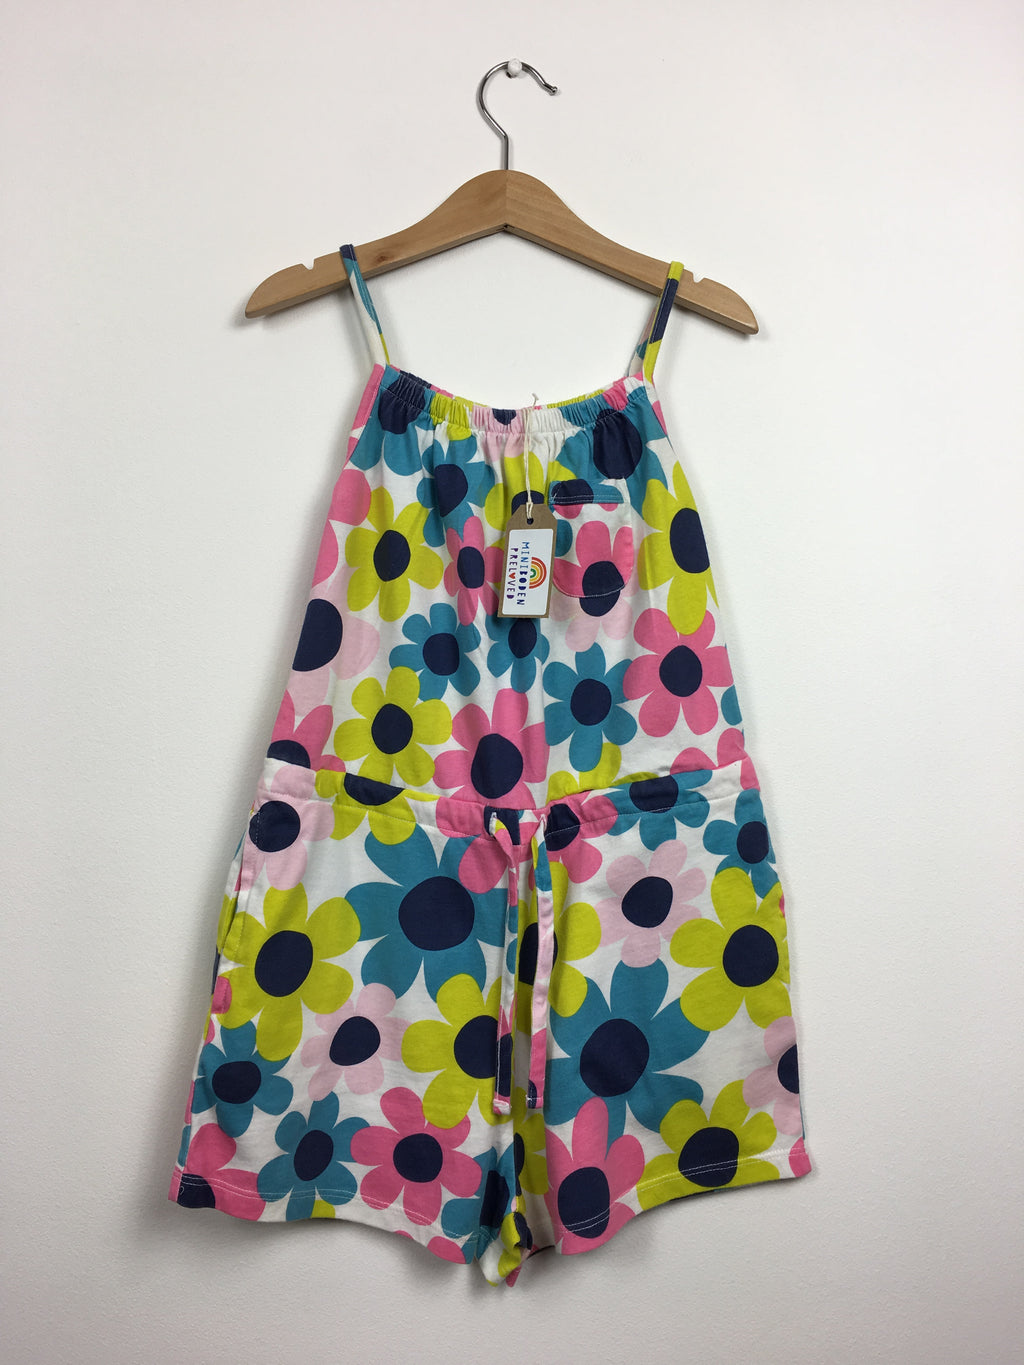 Retro Flower Print Playsuit (7-8 Years)